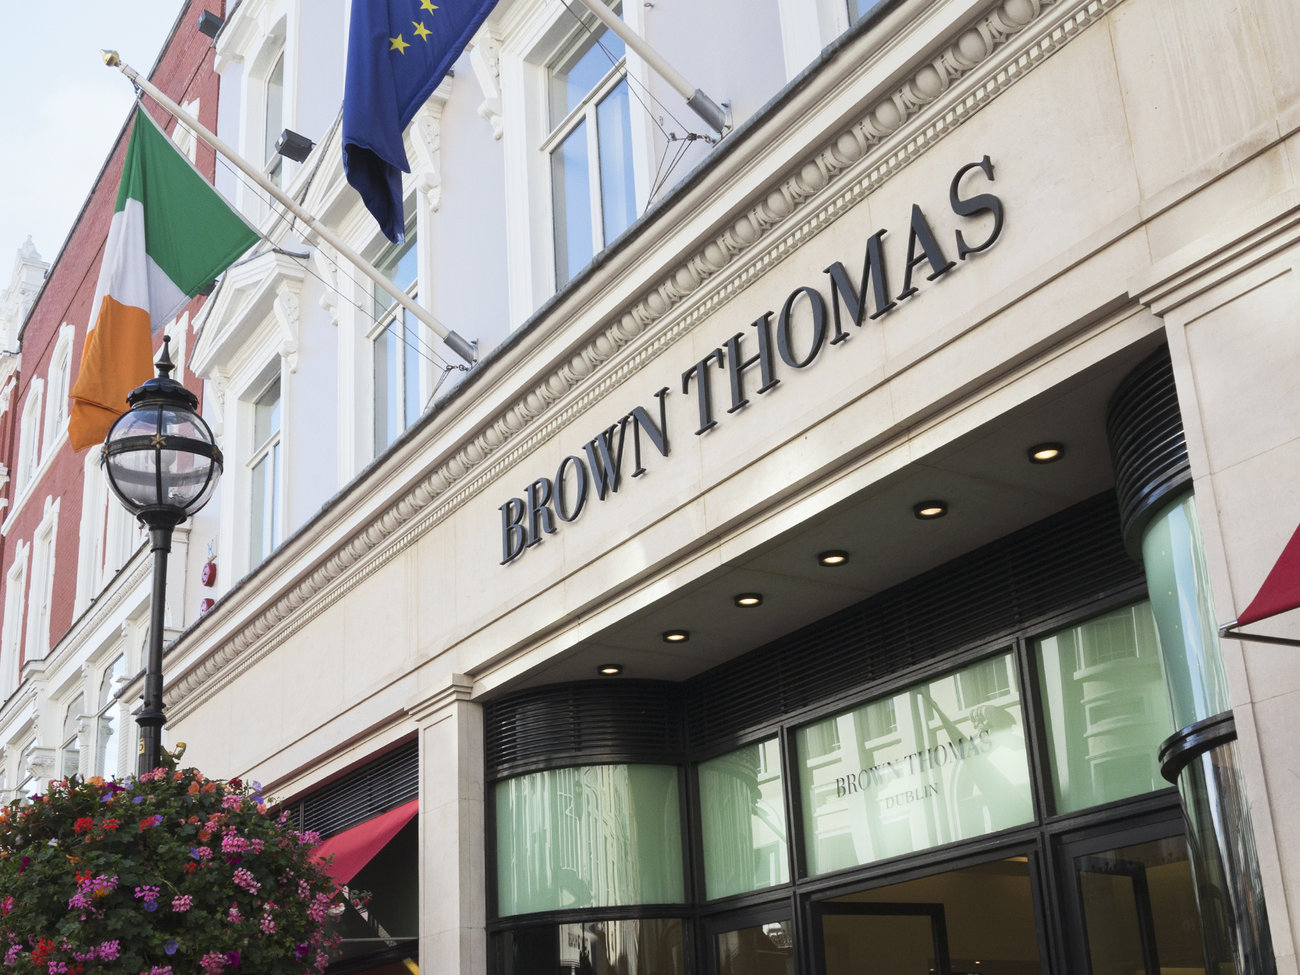 Brown Thomas Department Store in Dublin